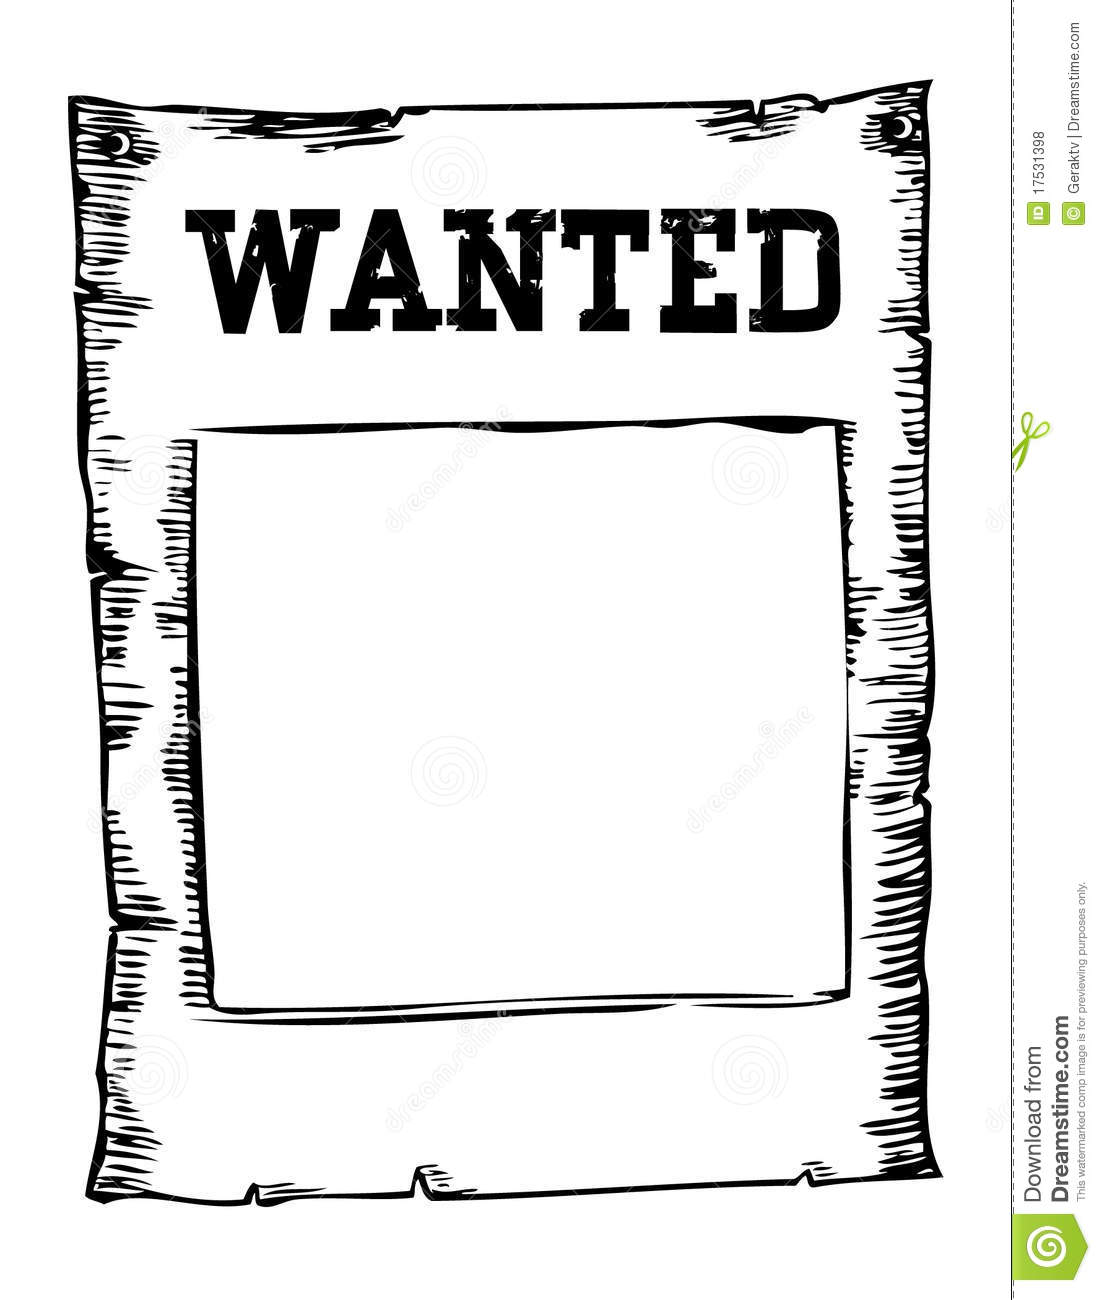 Wanted Poster Clip Art U2013 Clipart Fre-Wanted Poster Clip Art u2013 Clipart Free Download-6